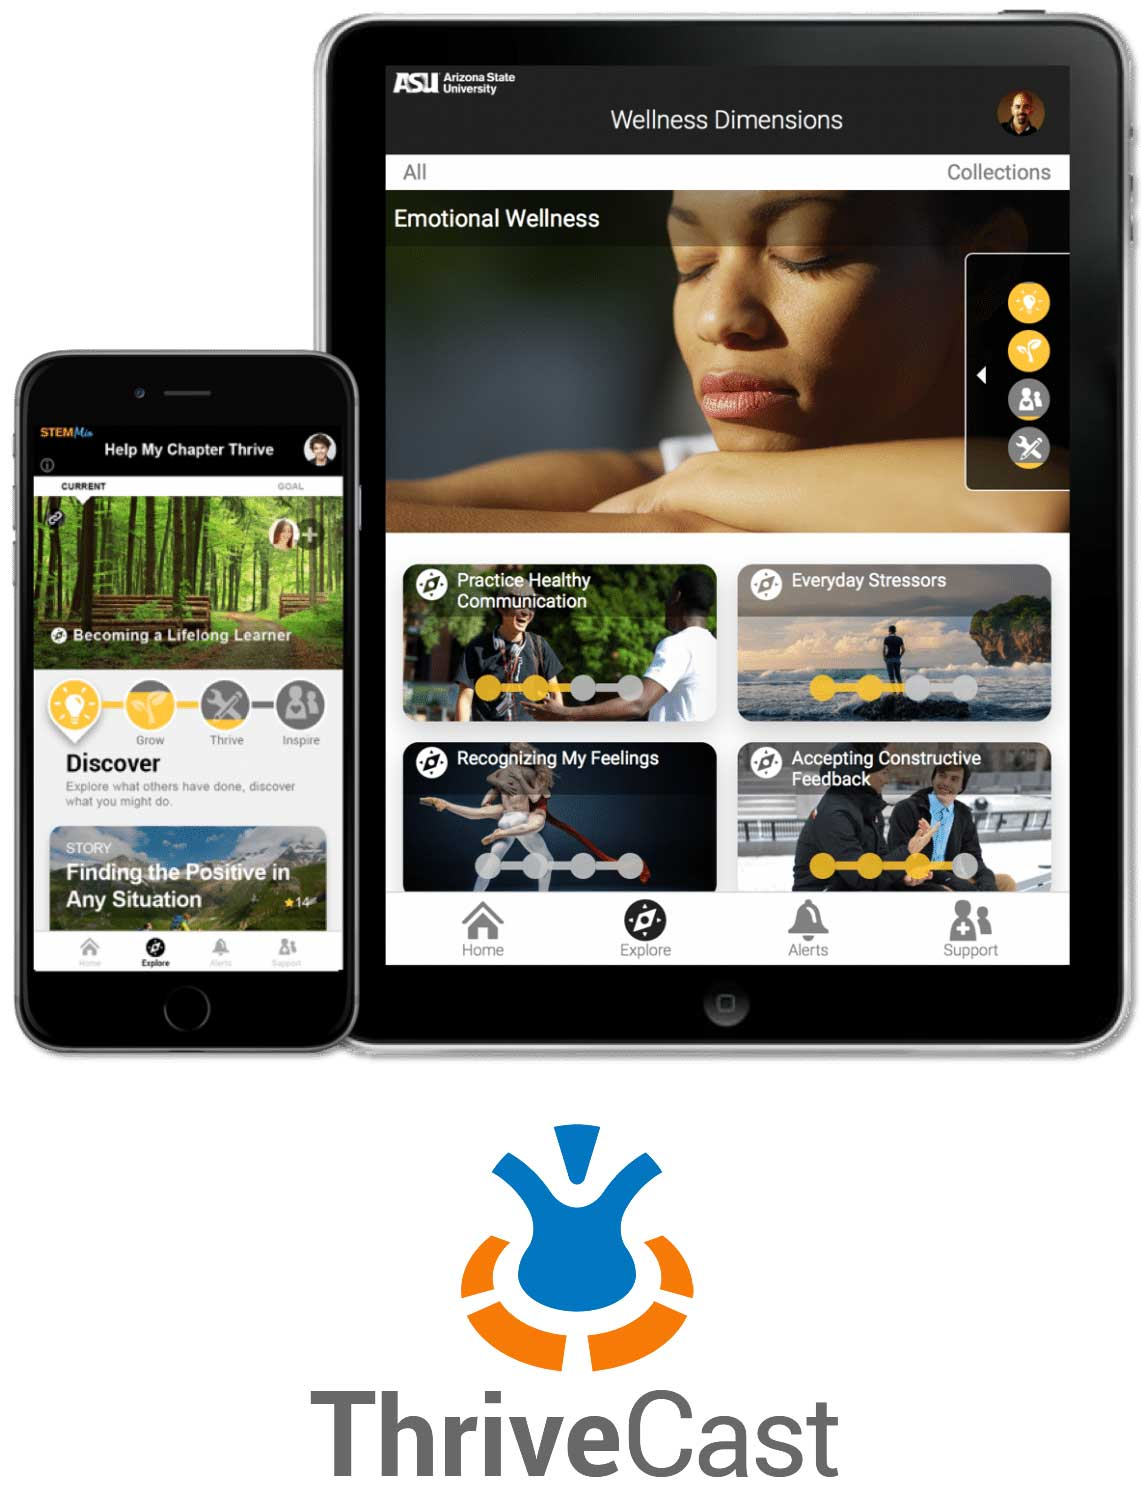 ThriveCast mobile apps